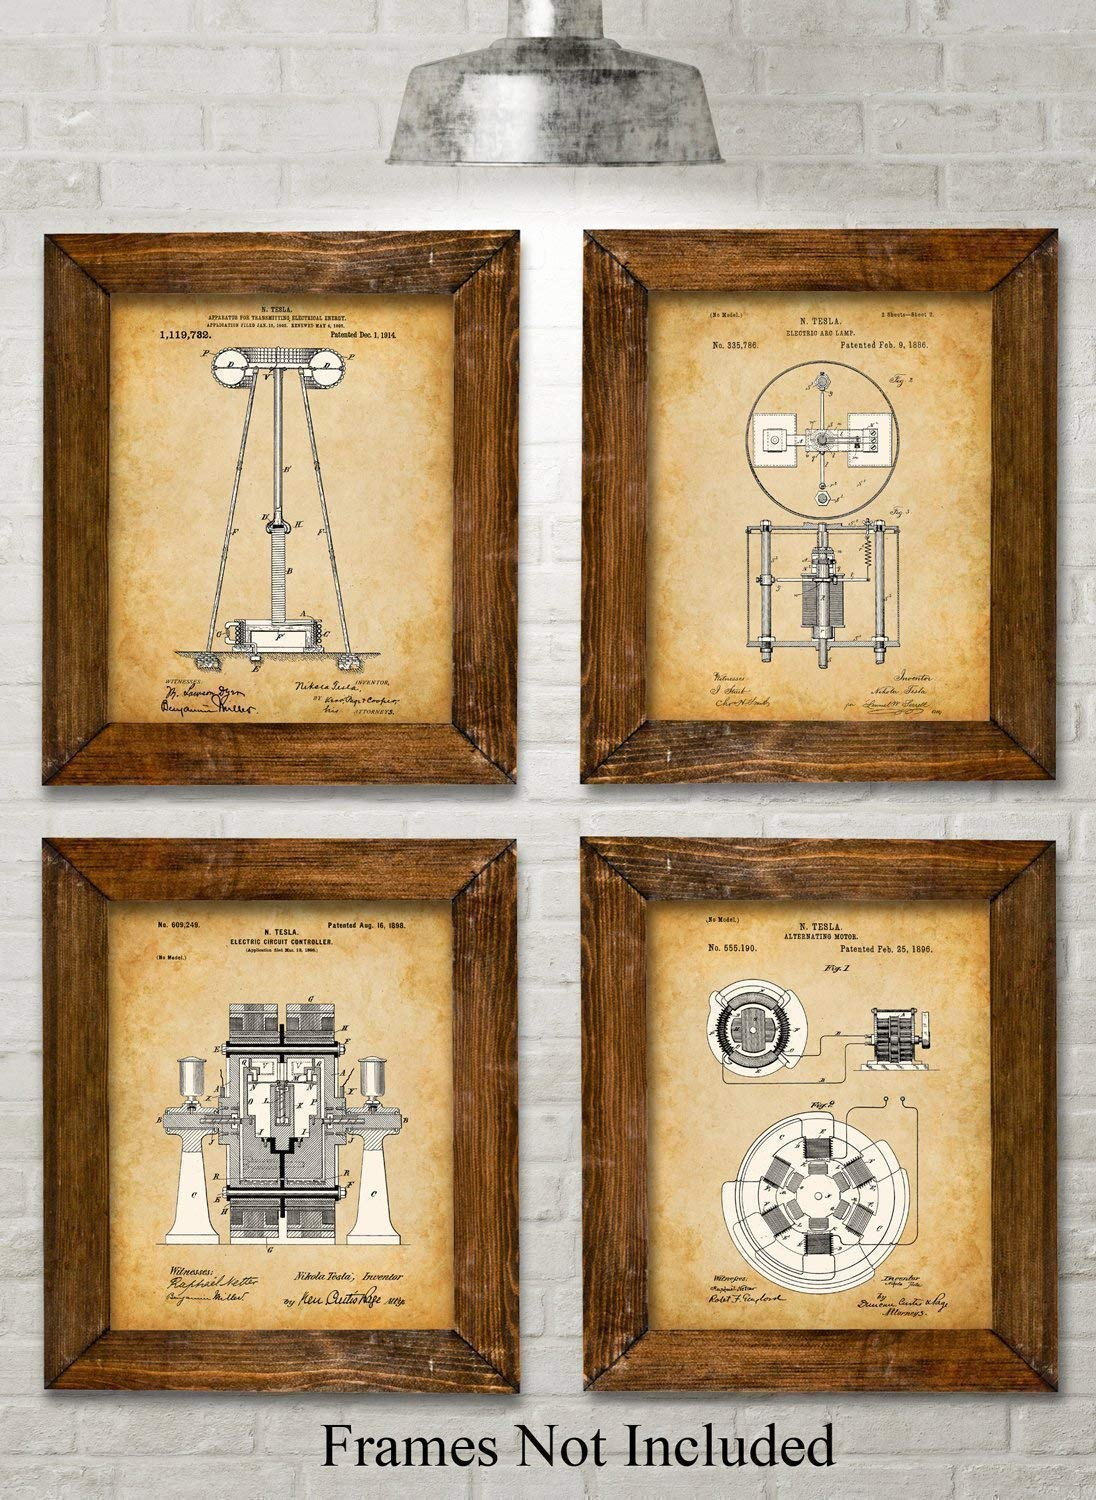 Tesla Patent Art Prints - Many IT Professionals are serious fans of the genius that was Nikola Tesla and would love some of his patents on the wall in their office.https://amzn.to/2SAuM3j